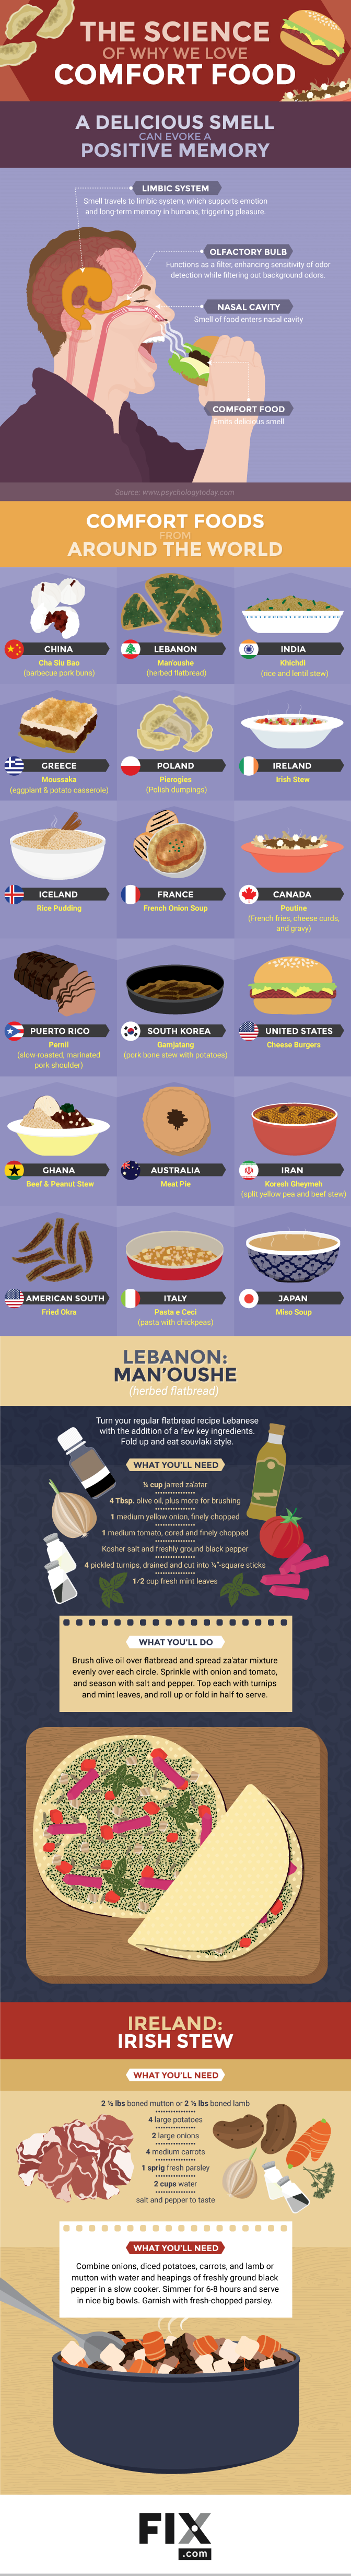 "Why ""Comfort Food"" Is Comforting – Scientific Explanation - Infographic"